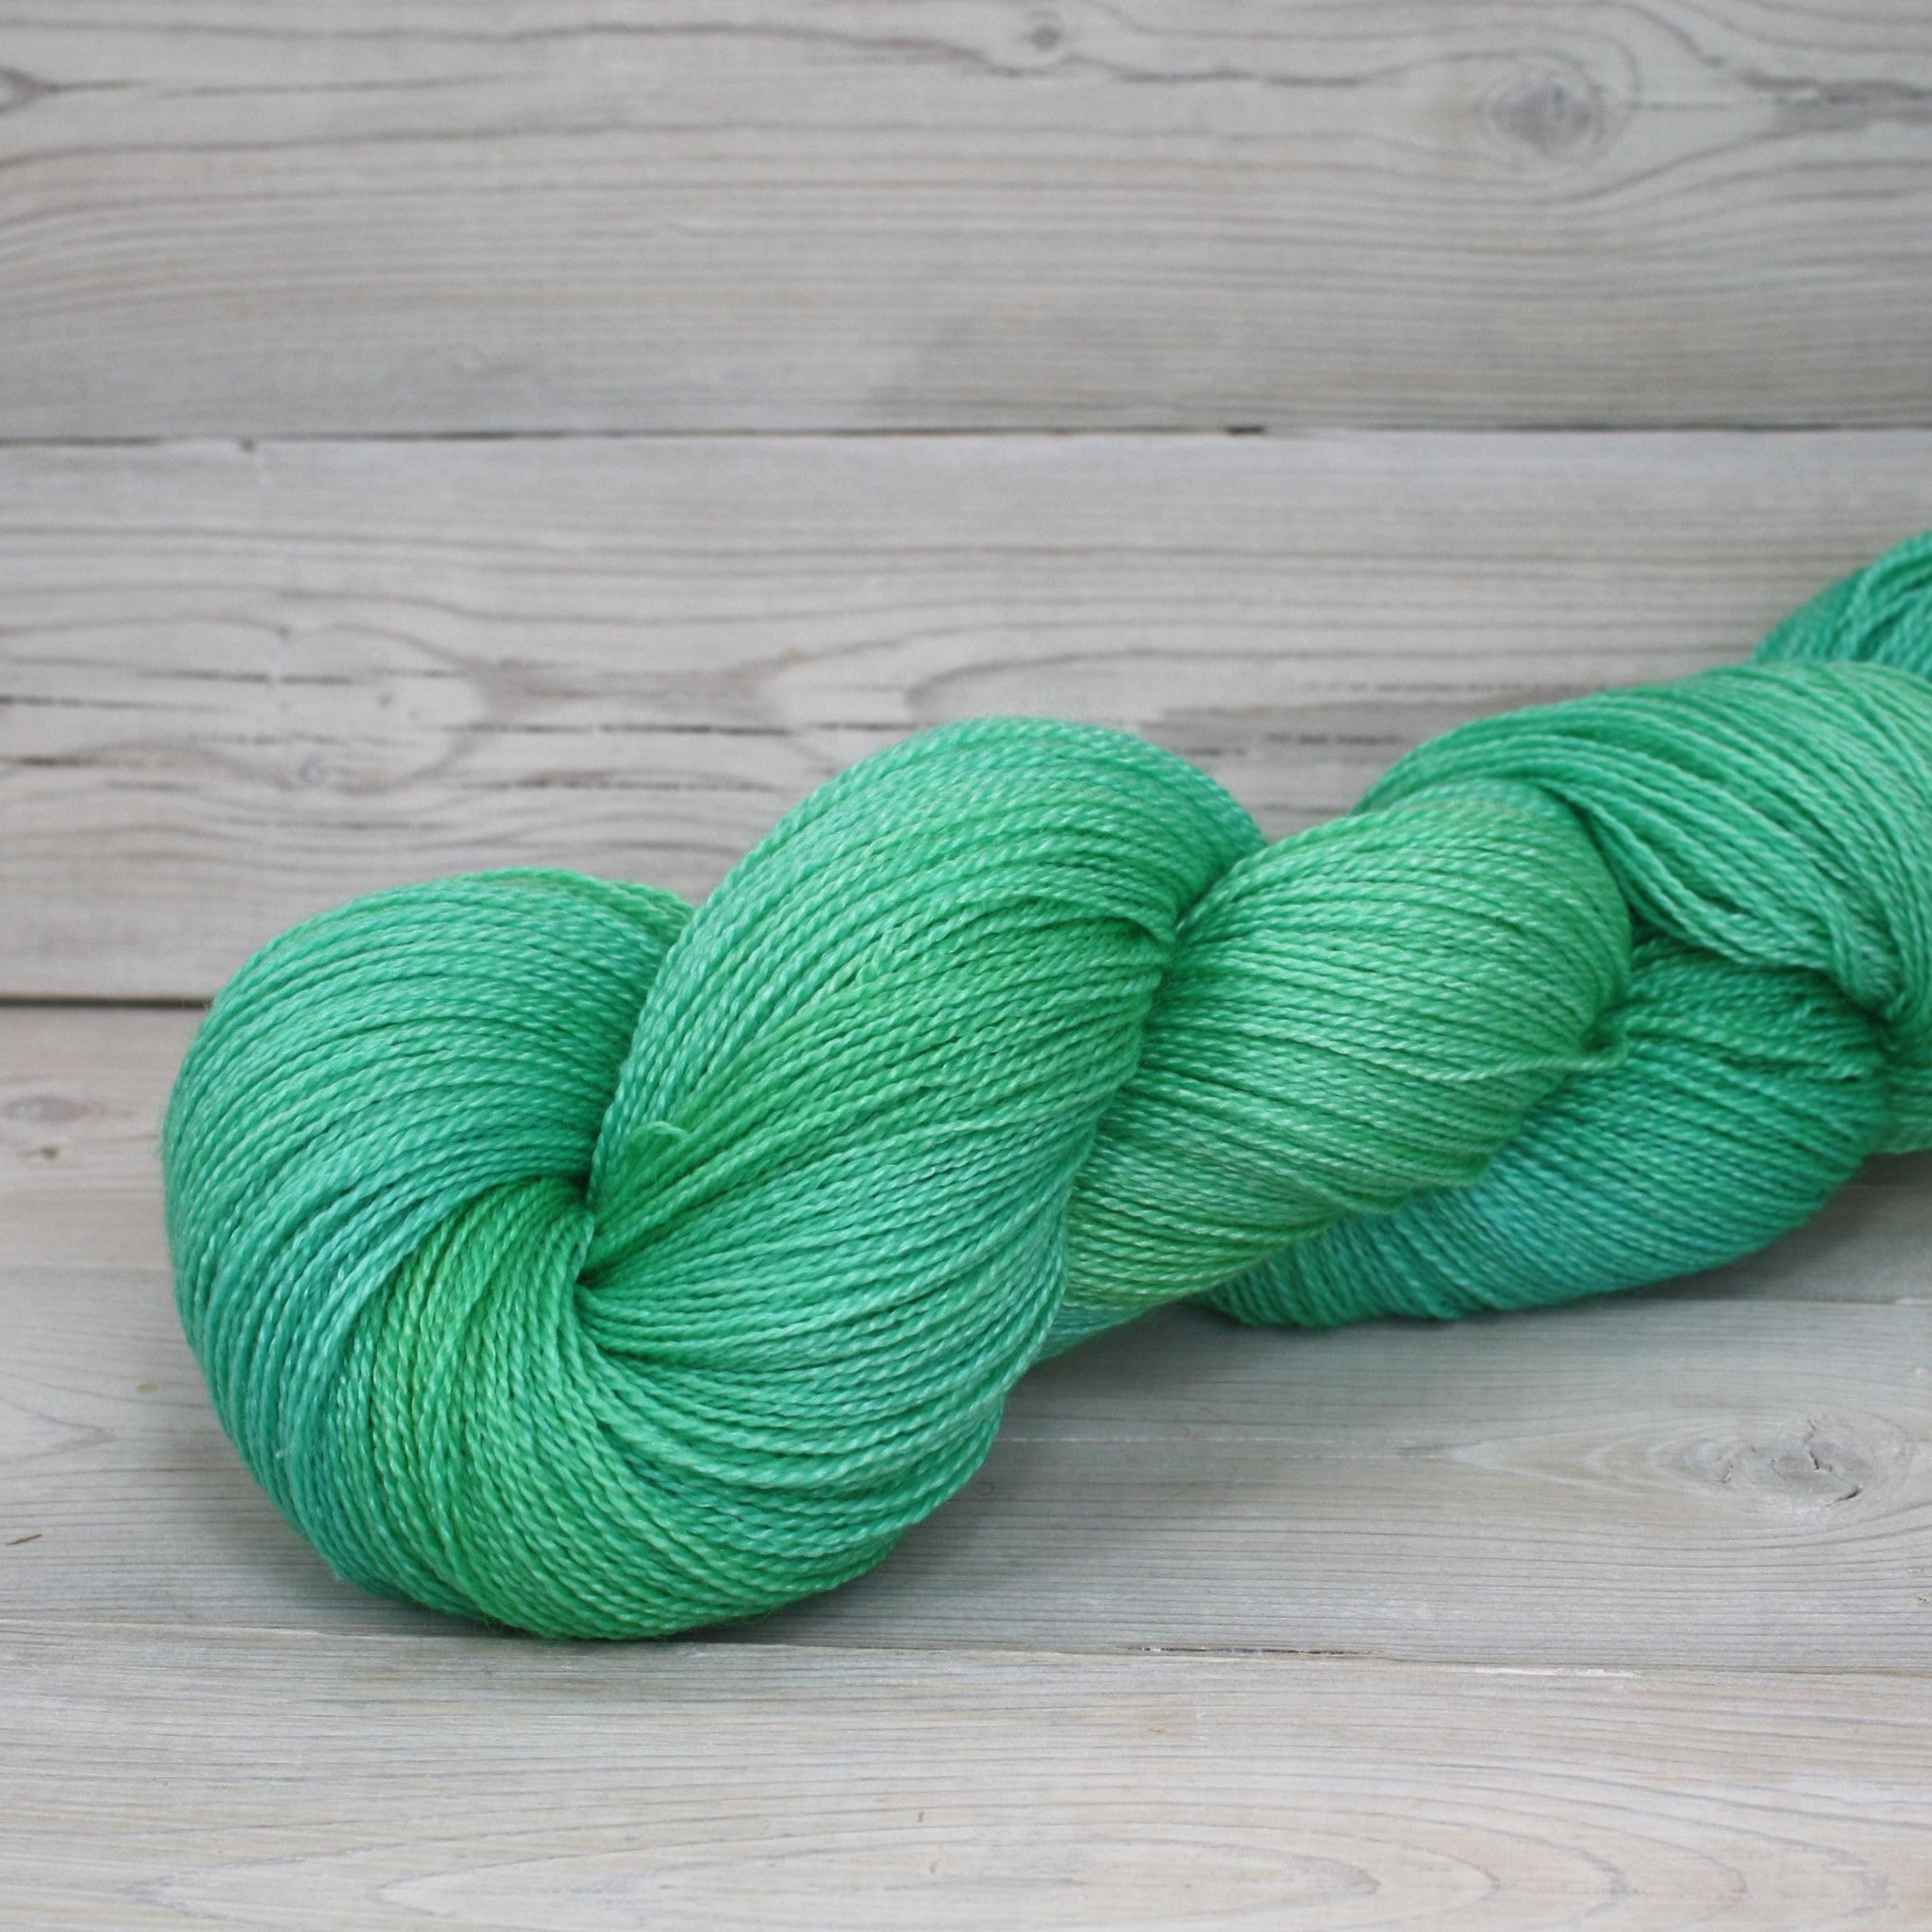 Starbright Yarn | Colorway: Spearmint